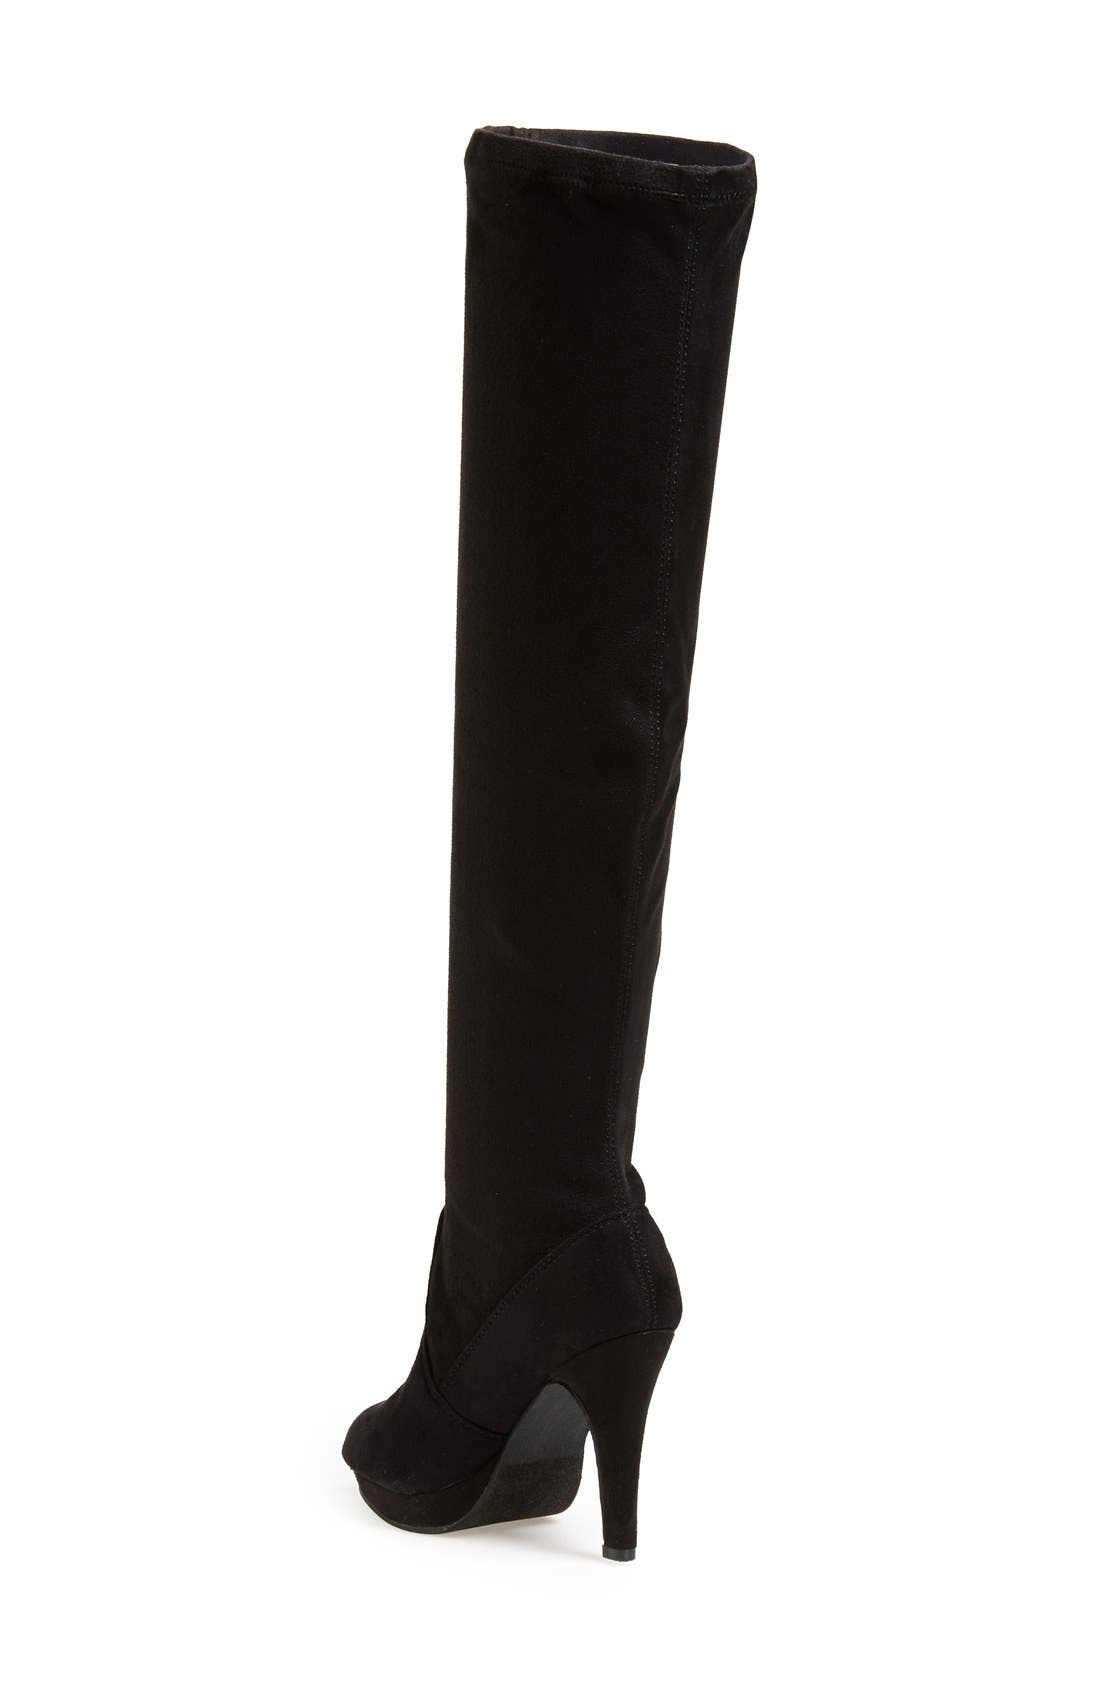 REPORT 'Nadya' Over The Knee Boot,                             Alternate thumbnail 2, color,                             001